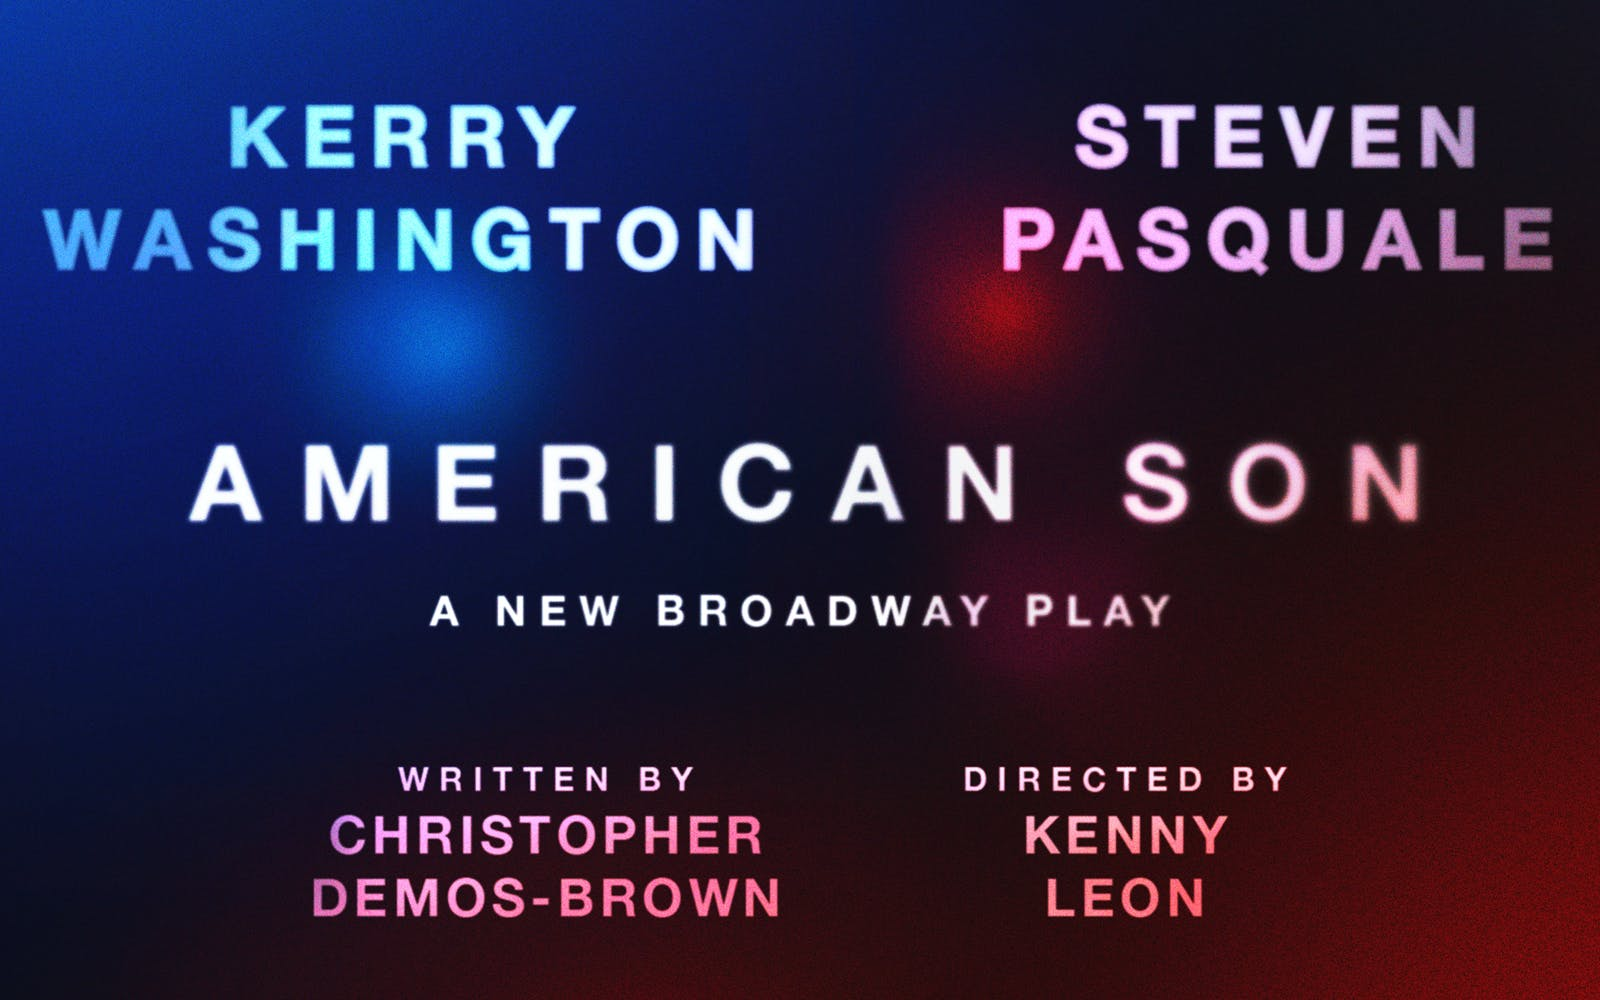 NYC Broadway Seating Chart